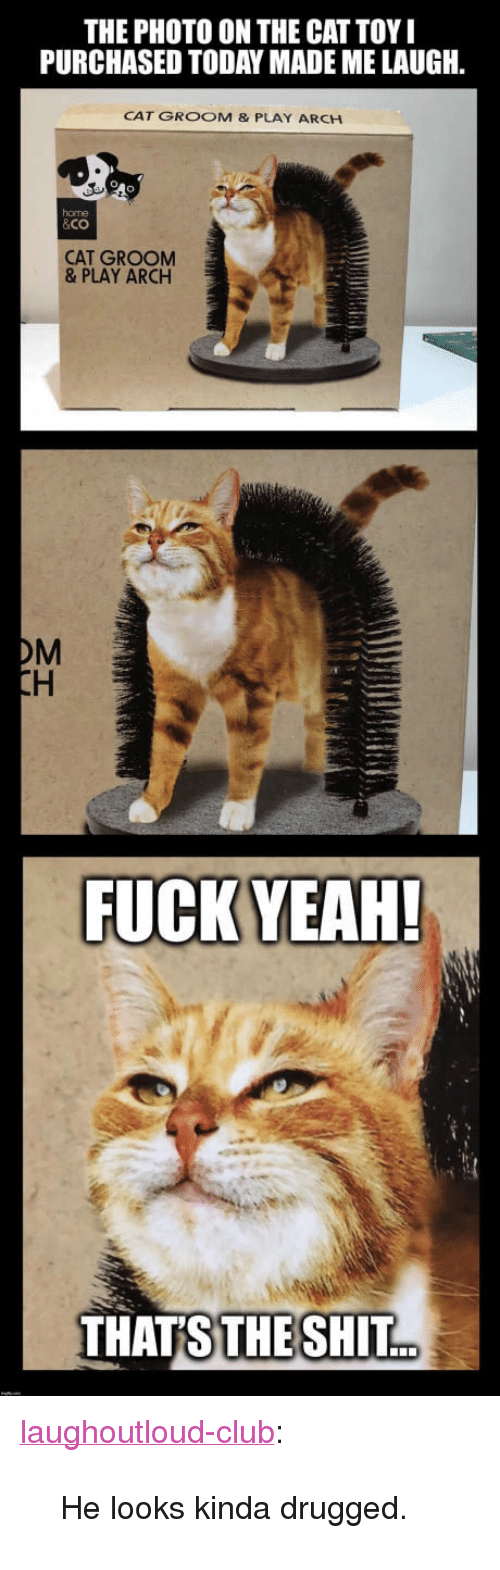 """drugged: THE PHOTO ON THE CAT TOY  PURCHASED TODAY MADE ME LAUGH  CAT GROOM & PLAY ARCH  home  &Co  CAT GROOM  & PLAY ARCH  OM  THATS  THE SHIT. <p><a href=""""http://laughoutloud-club.tumblr.com/post/169556883628/he-looks-kinda-drugged"""" class=""""tumblr_blog"""">laughoutloud-club</a>:</p>  <blockquote><p>He looks kinda drugged.</p></blockquote>"""